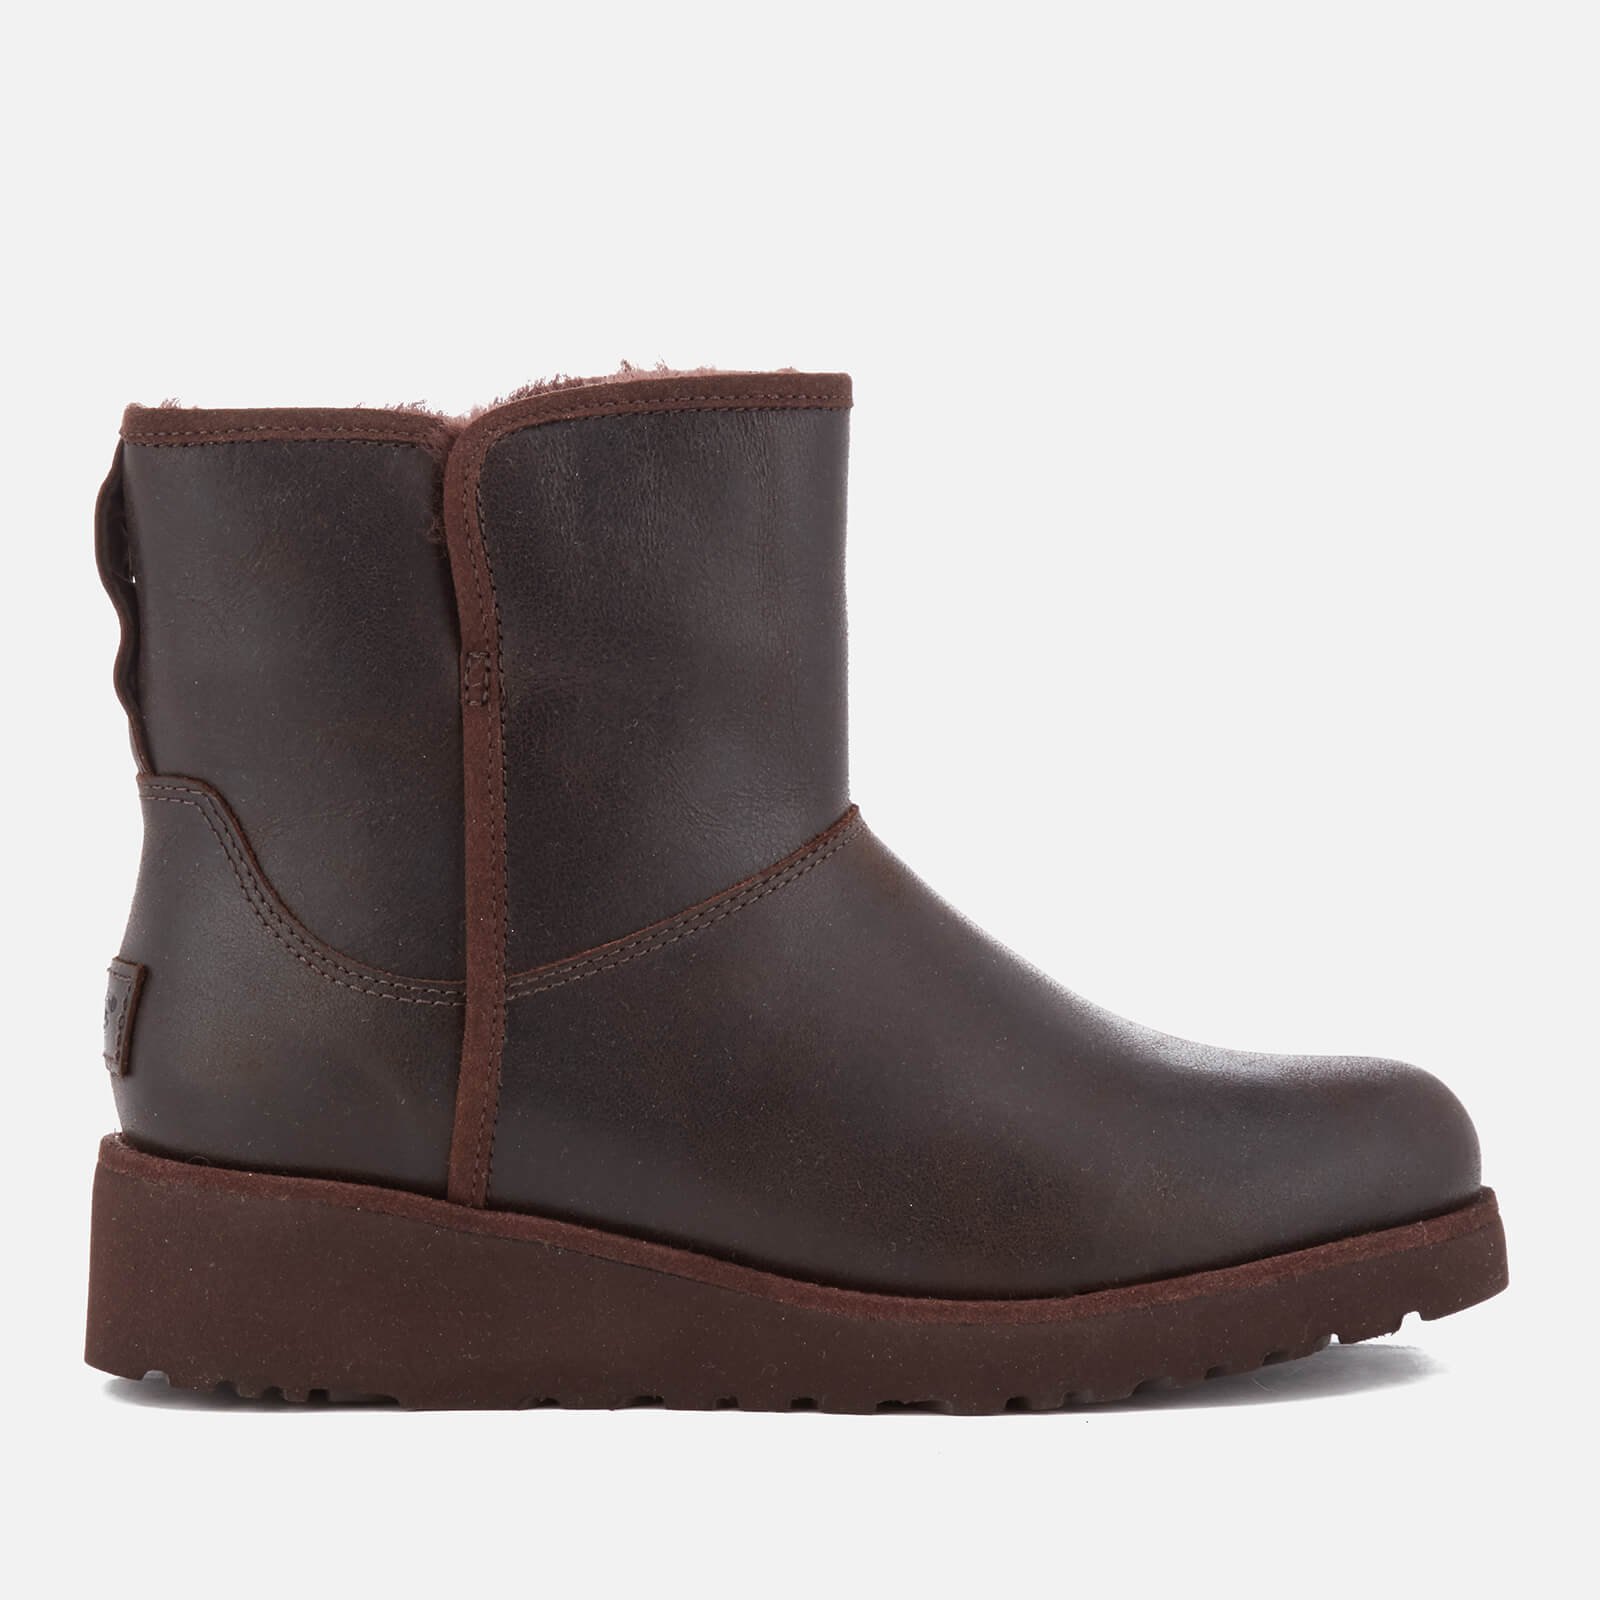 4f1975b7ffd UGG Women s Kristin Classic Slim Leather Sheepskin Boots - Stout - Free UK  Delivery over £50